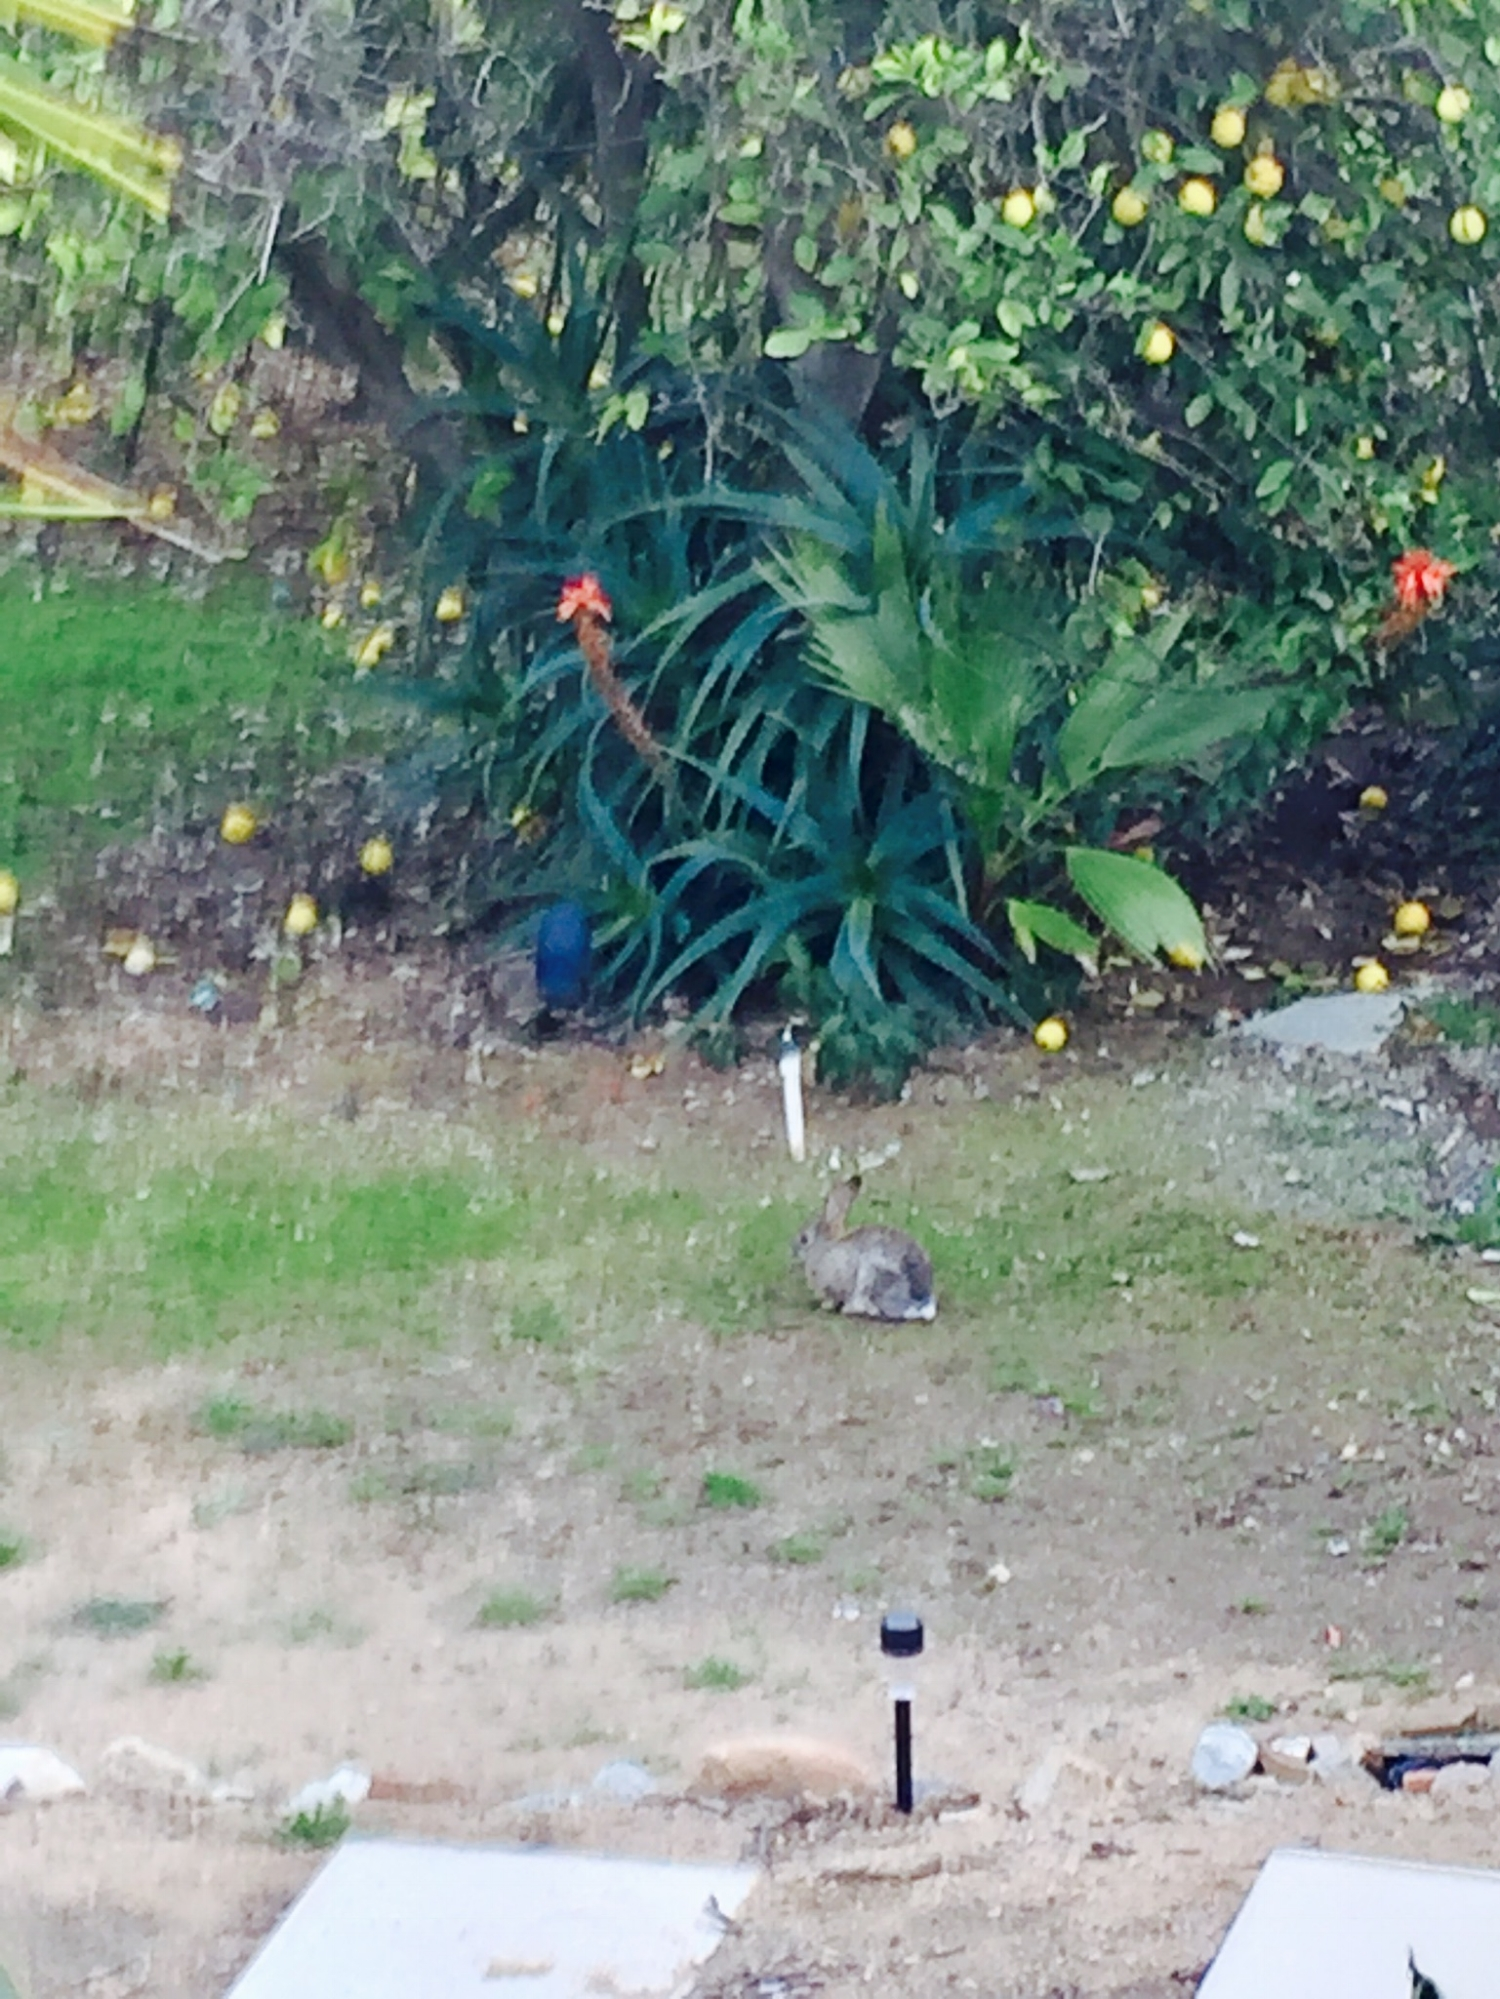 Can you see the rabbit?